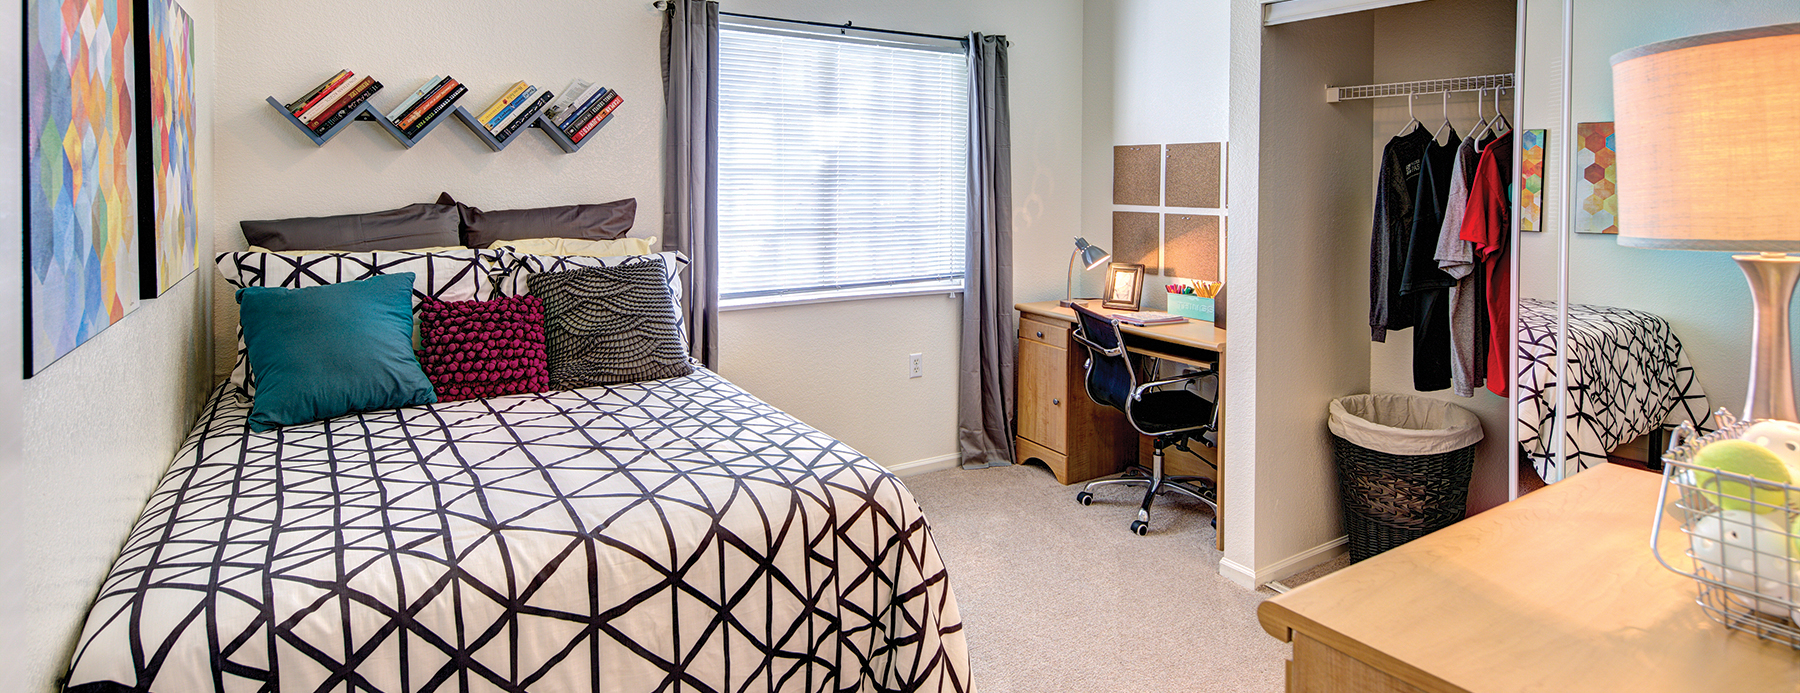 Student apartments university trails 2210 main street for One bedroom apartments lubbock